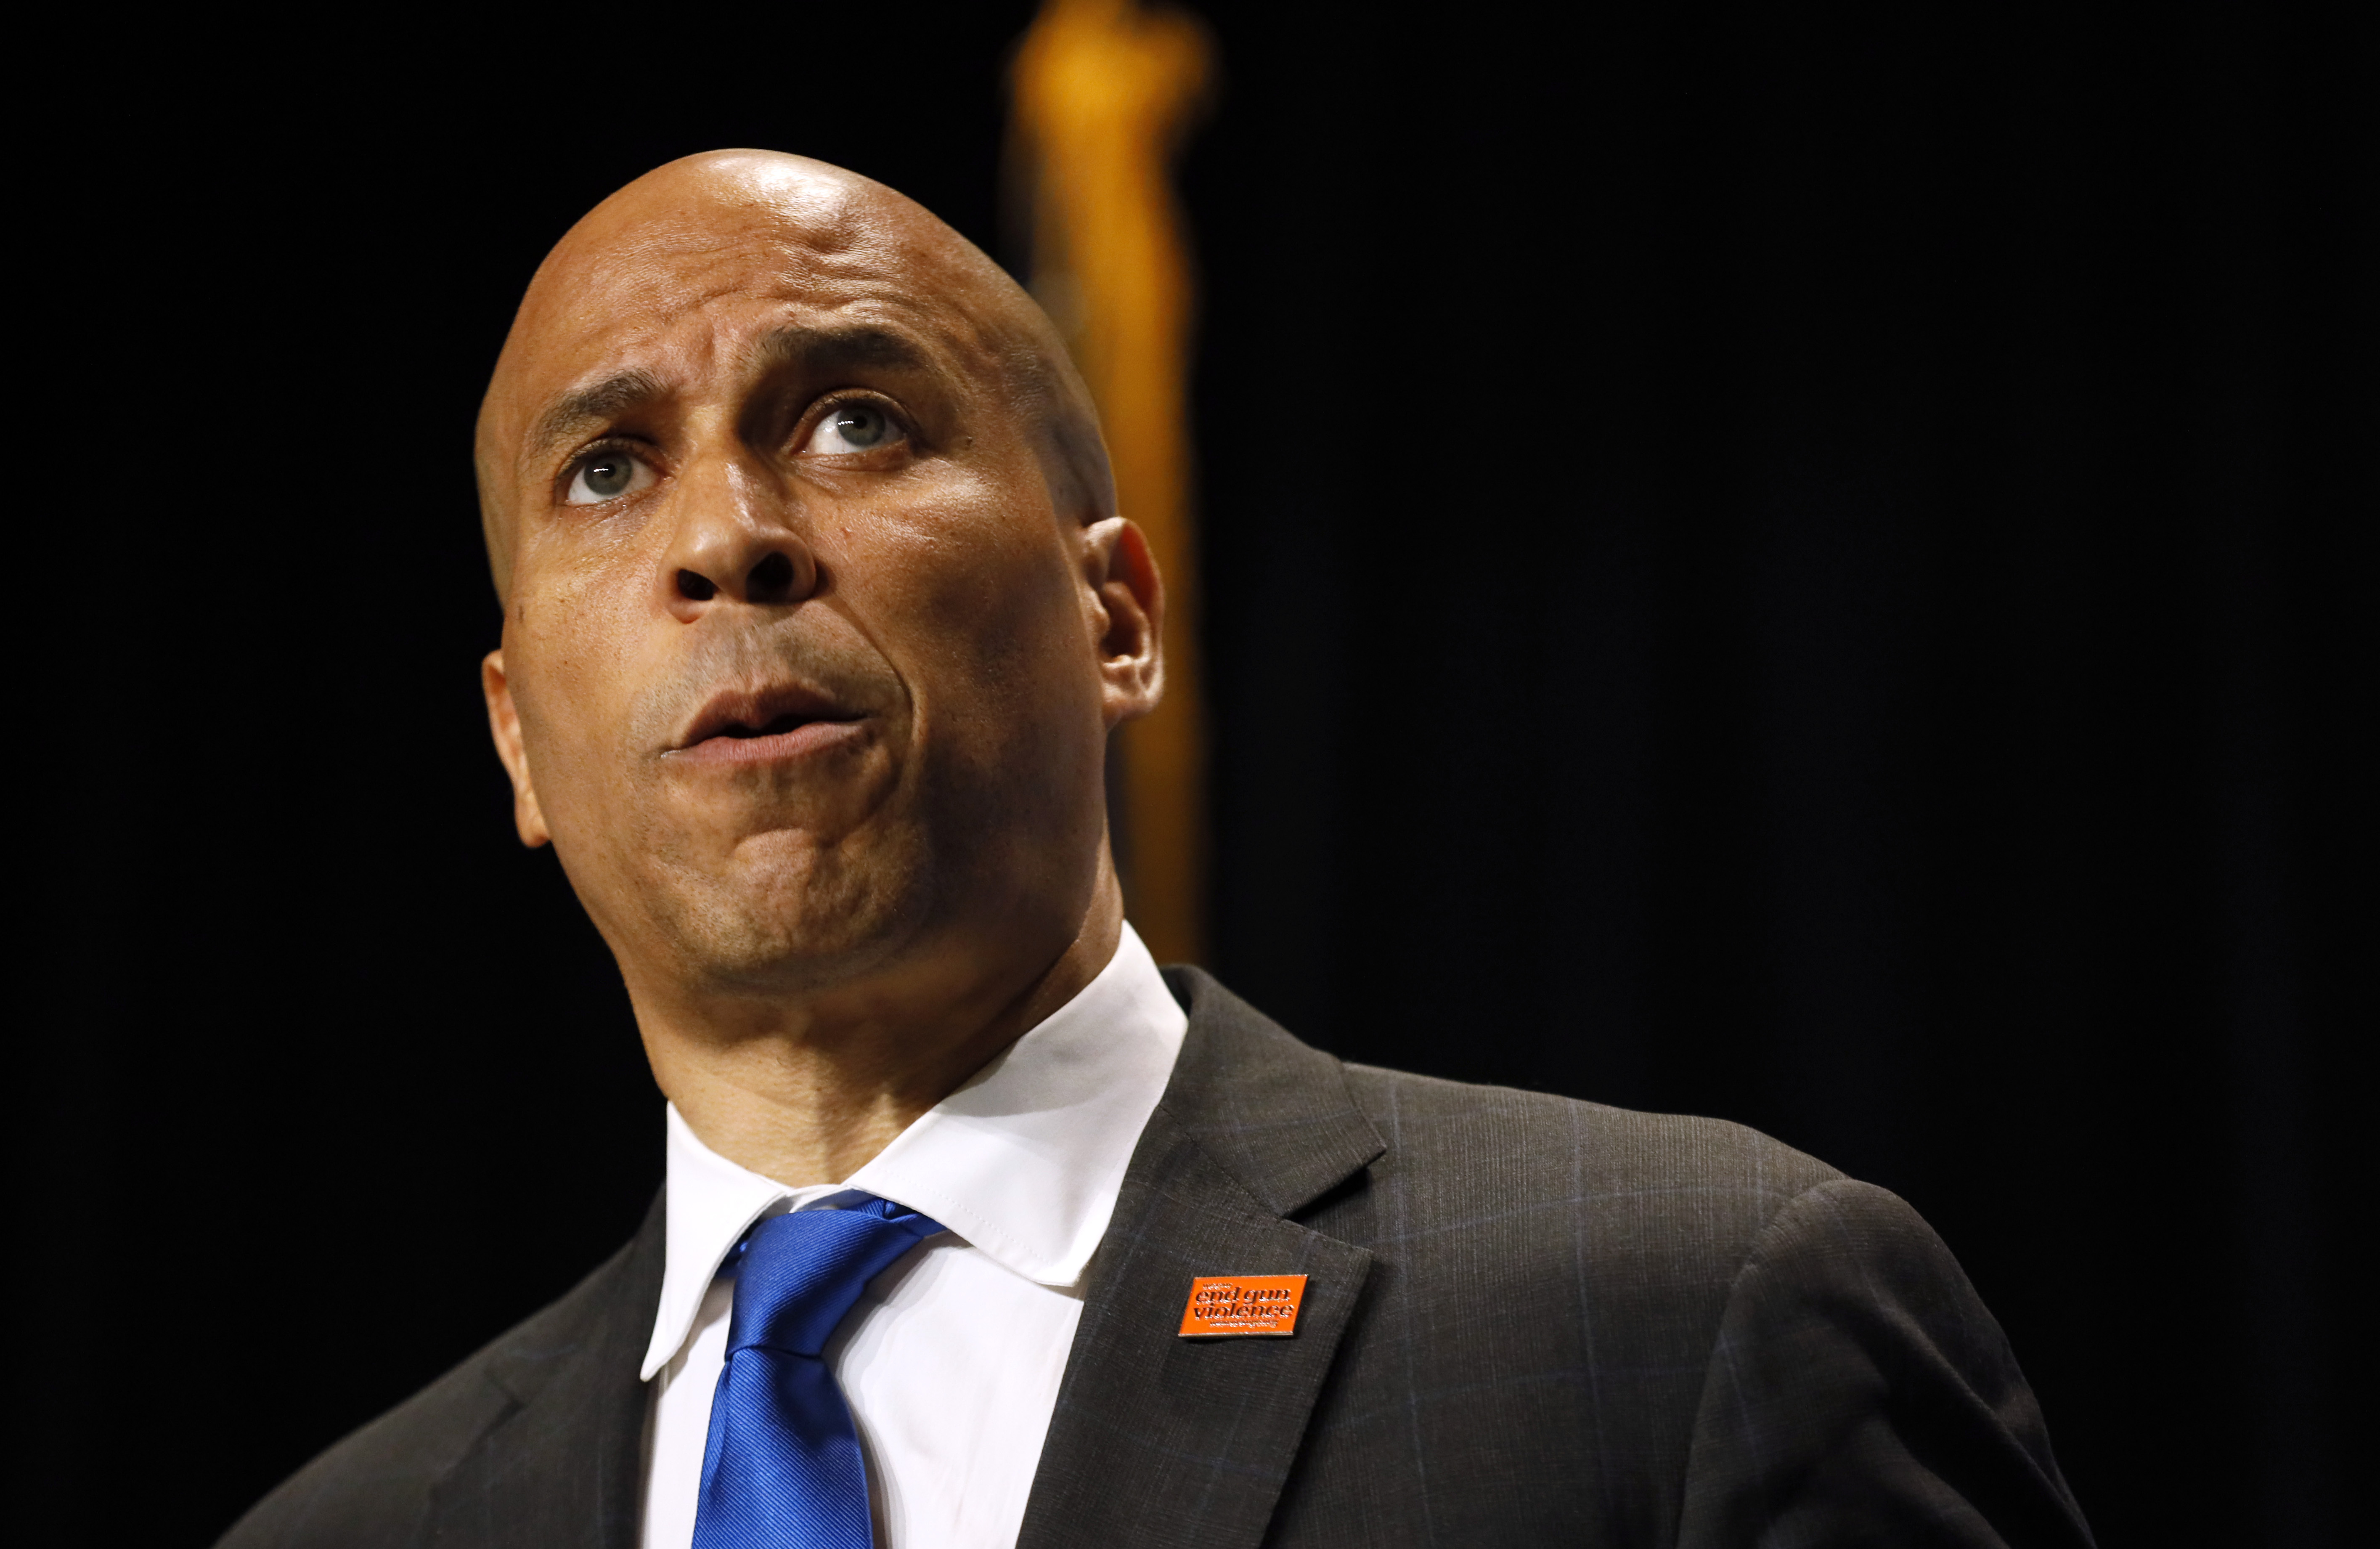 Democratic presidential candidate Cory Booker speaks during the Iowa Democratic Party's Hall of Fame Celebration, Sunday, June 9, 2019, in Cedar Rapids, Iowa.